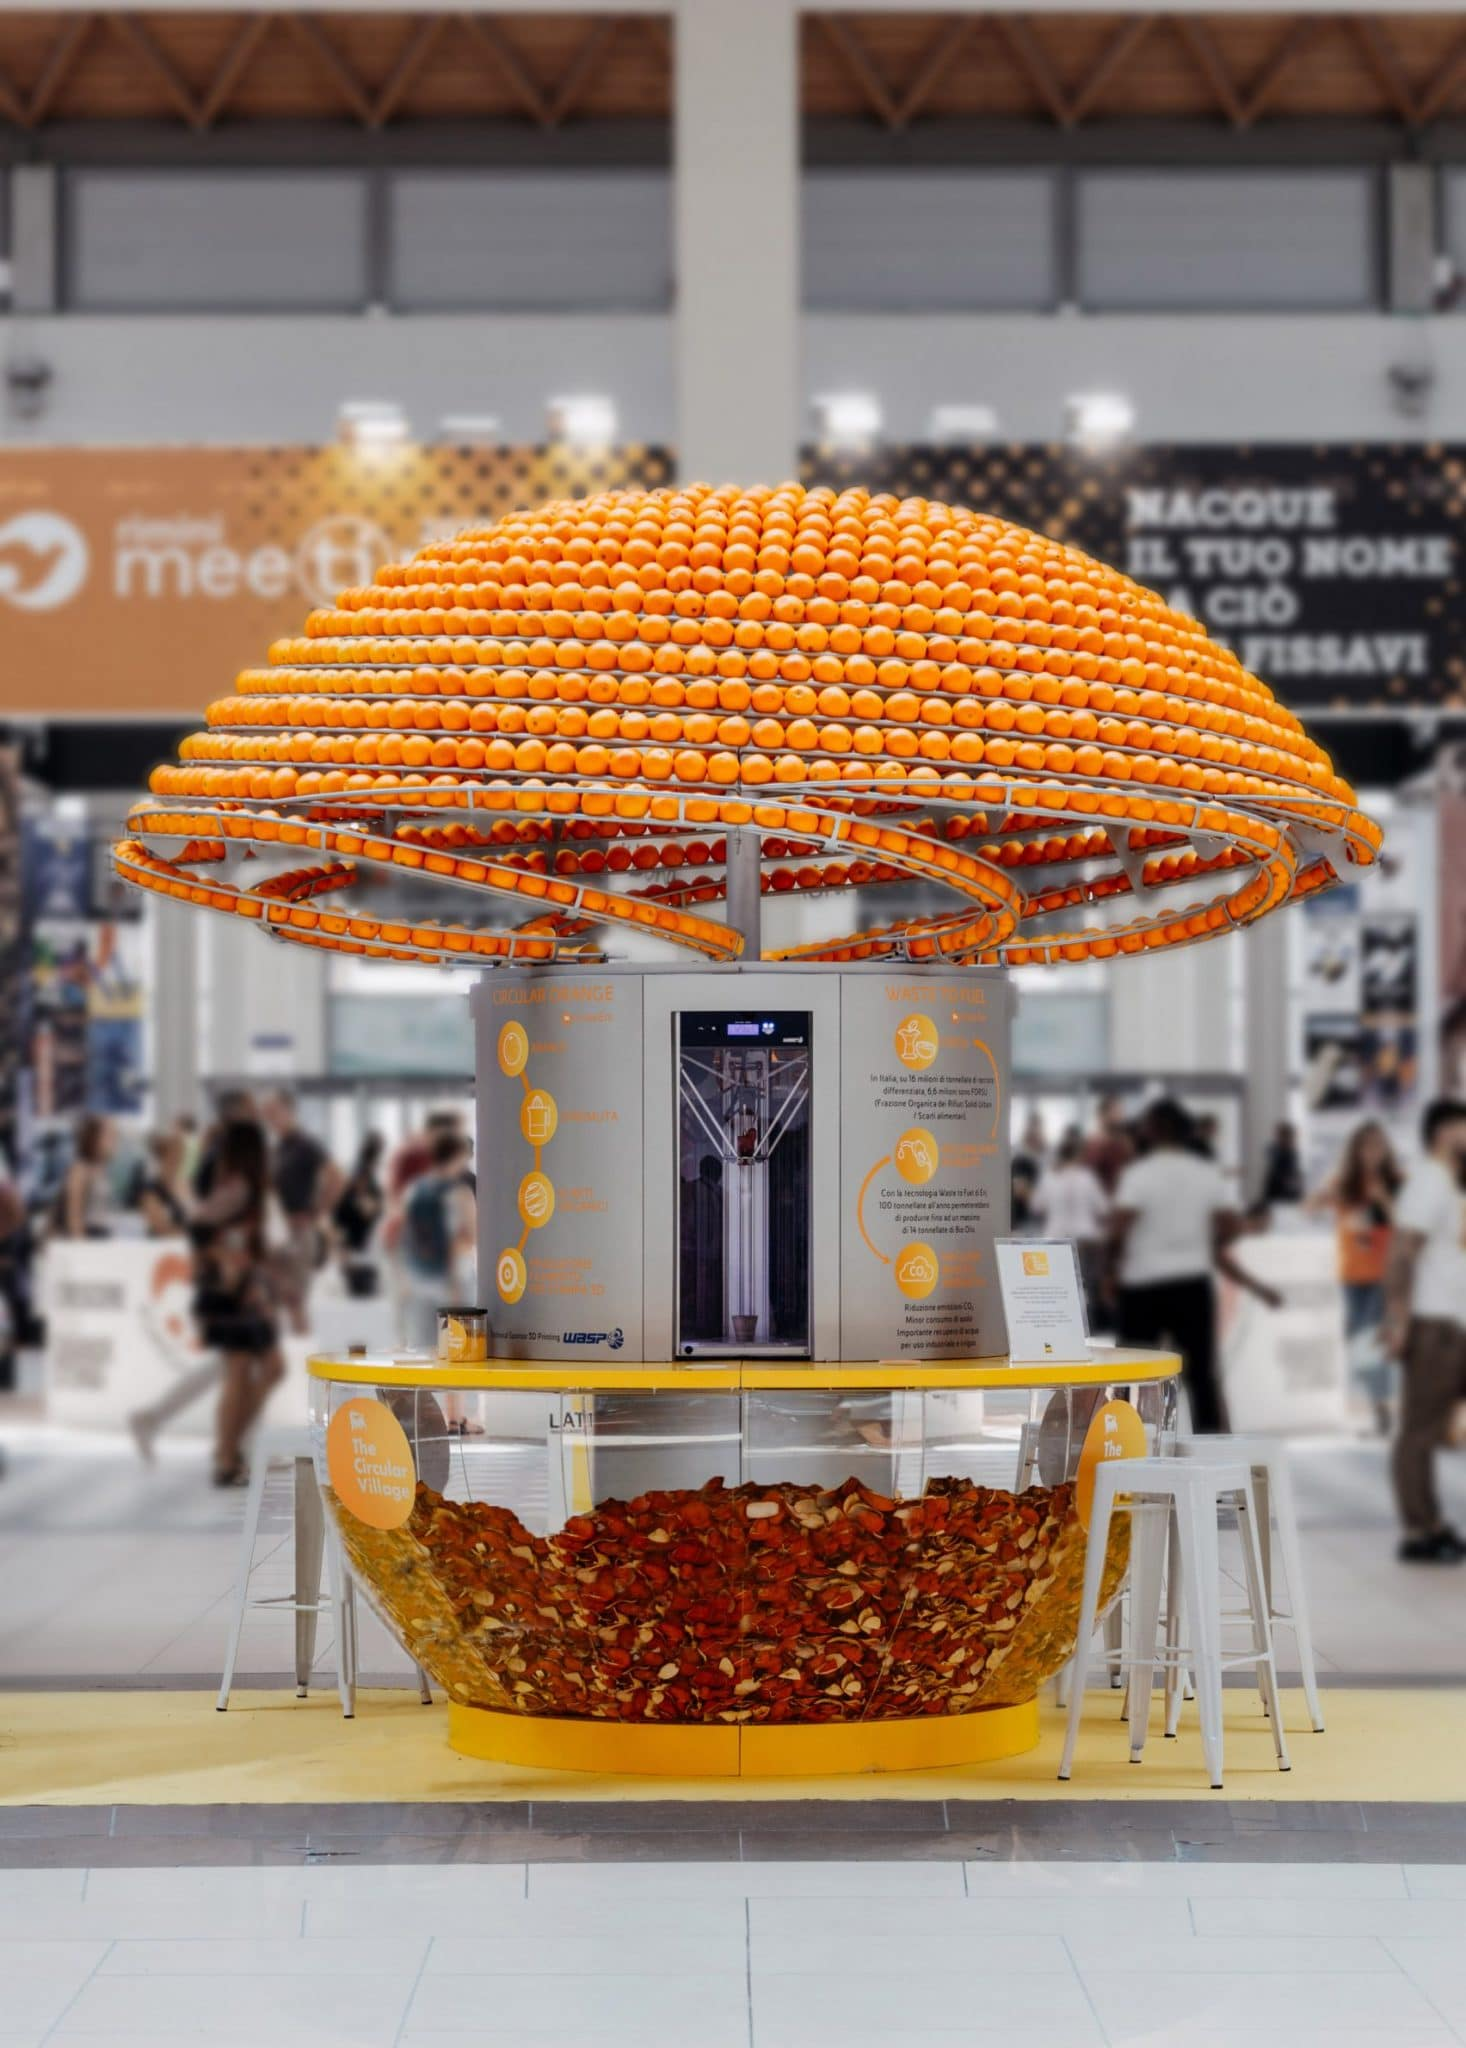 Carlo Ratti Feel the Peel orange